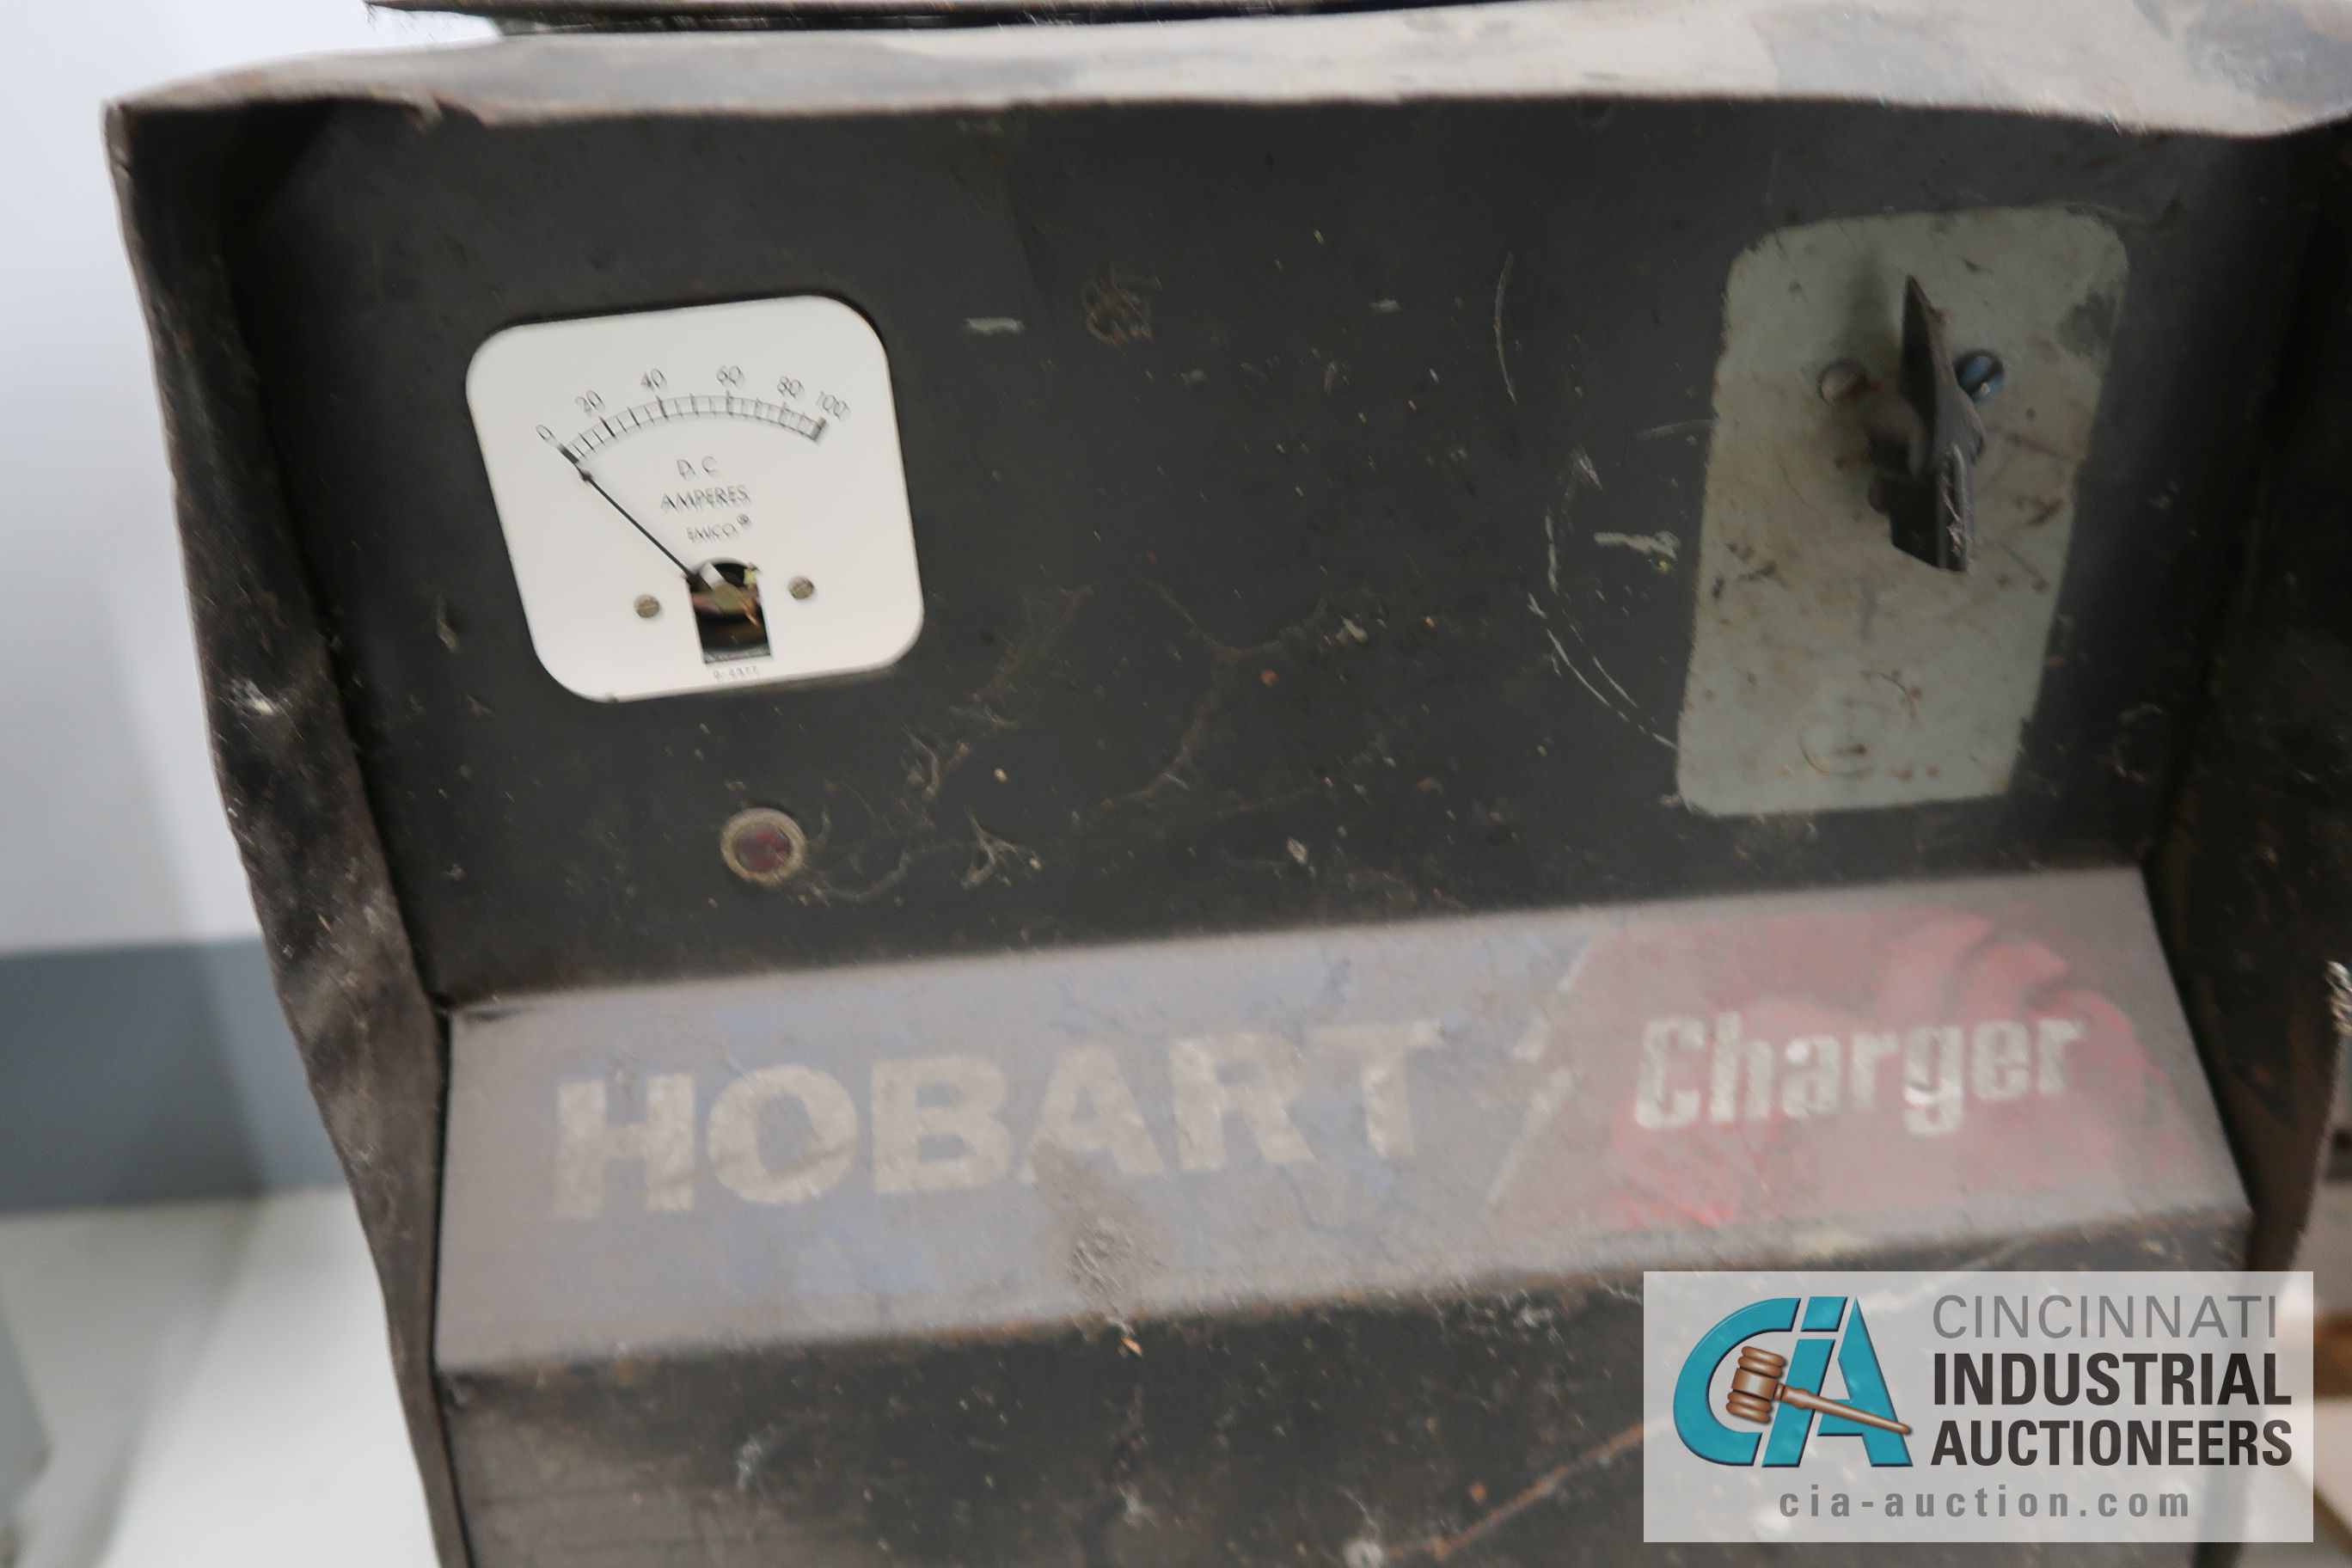 HOBART BATTERY CHARGER - Image 2 of 2